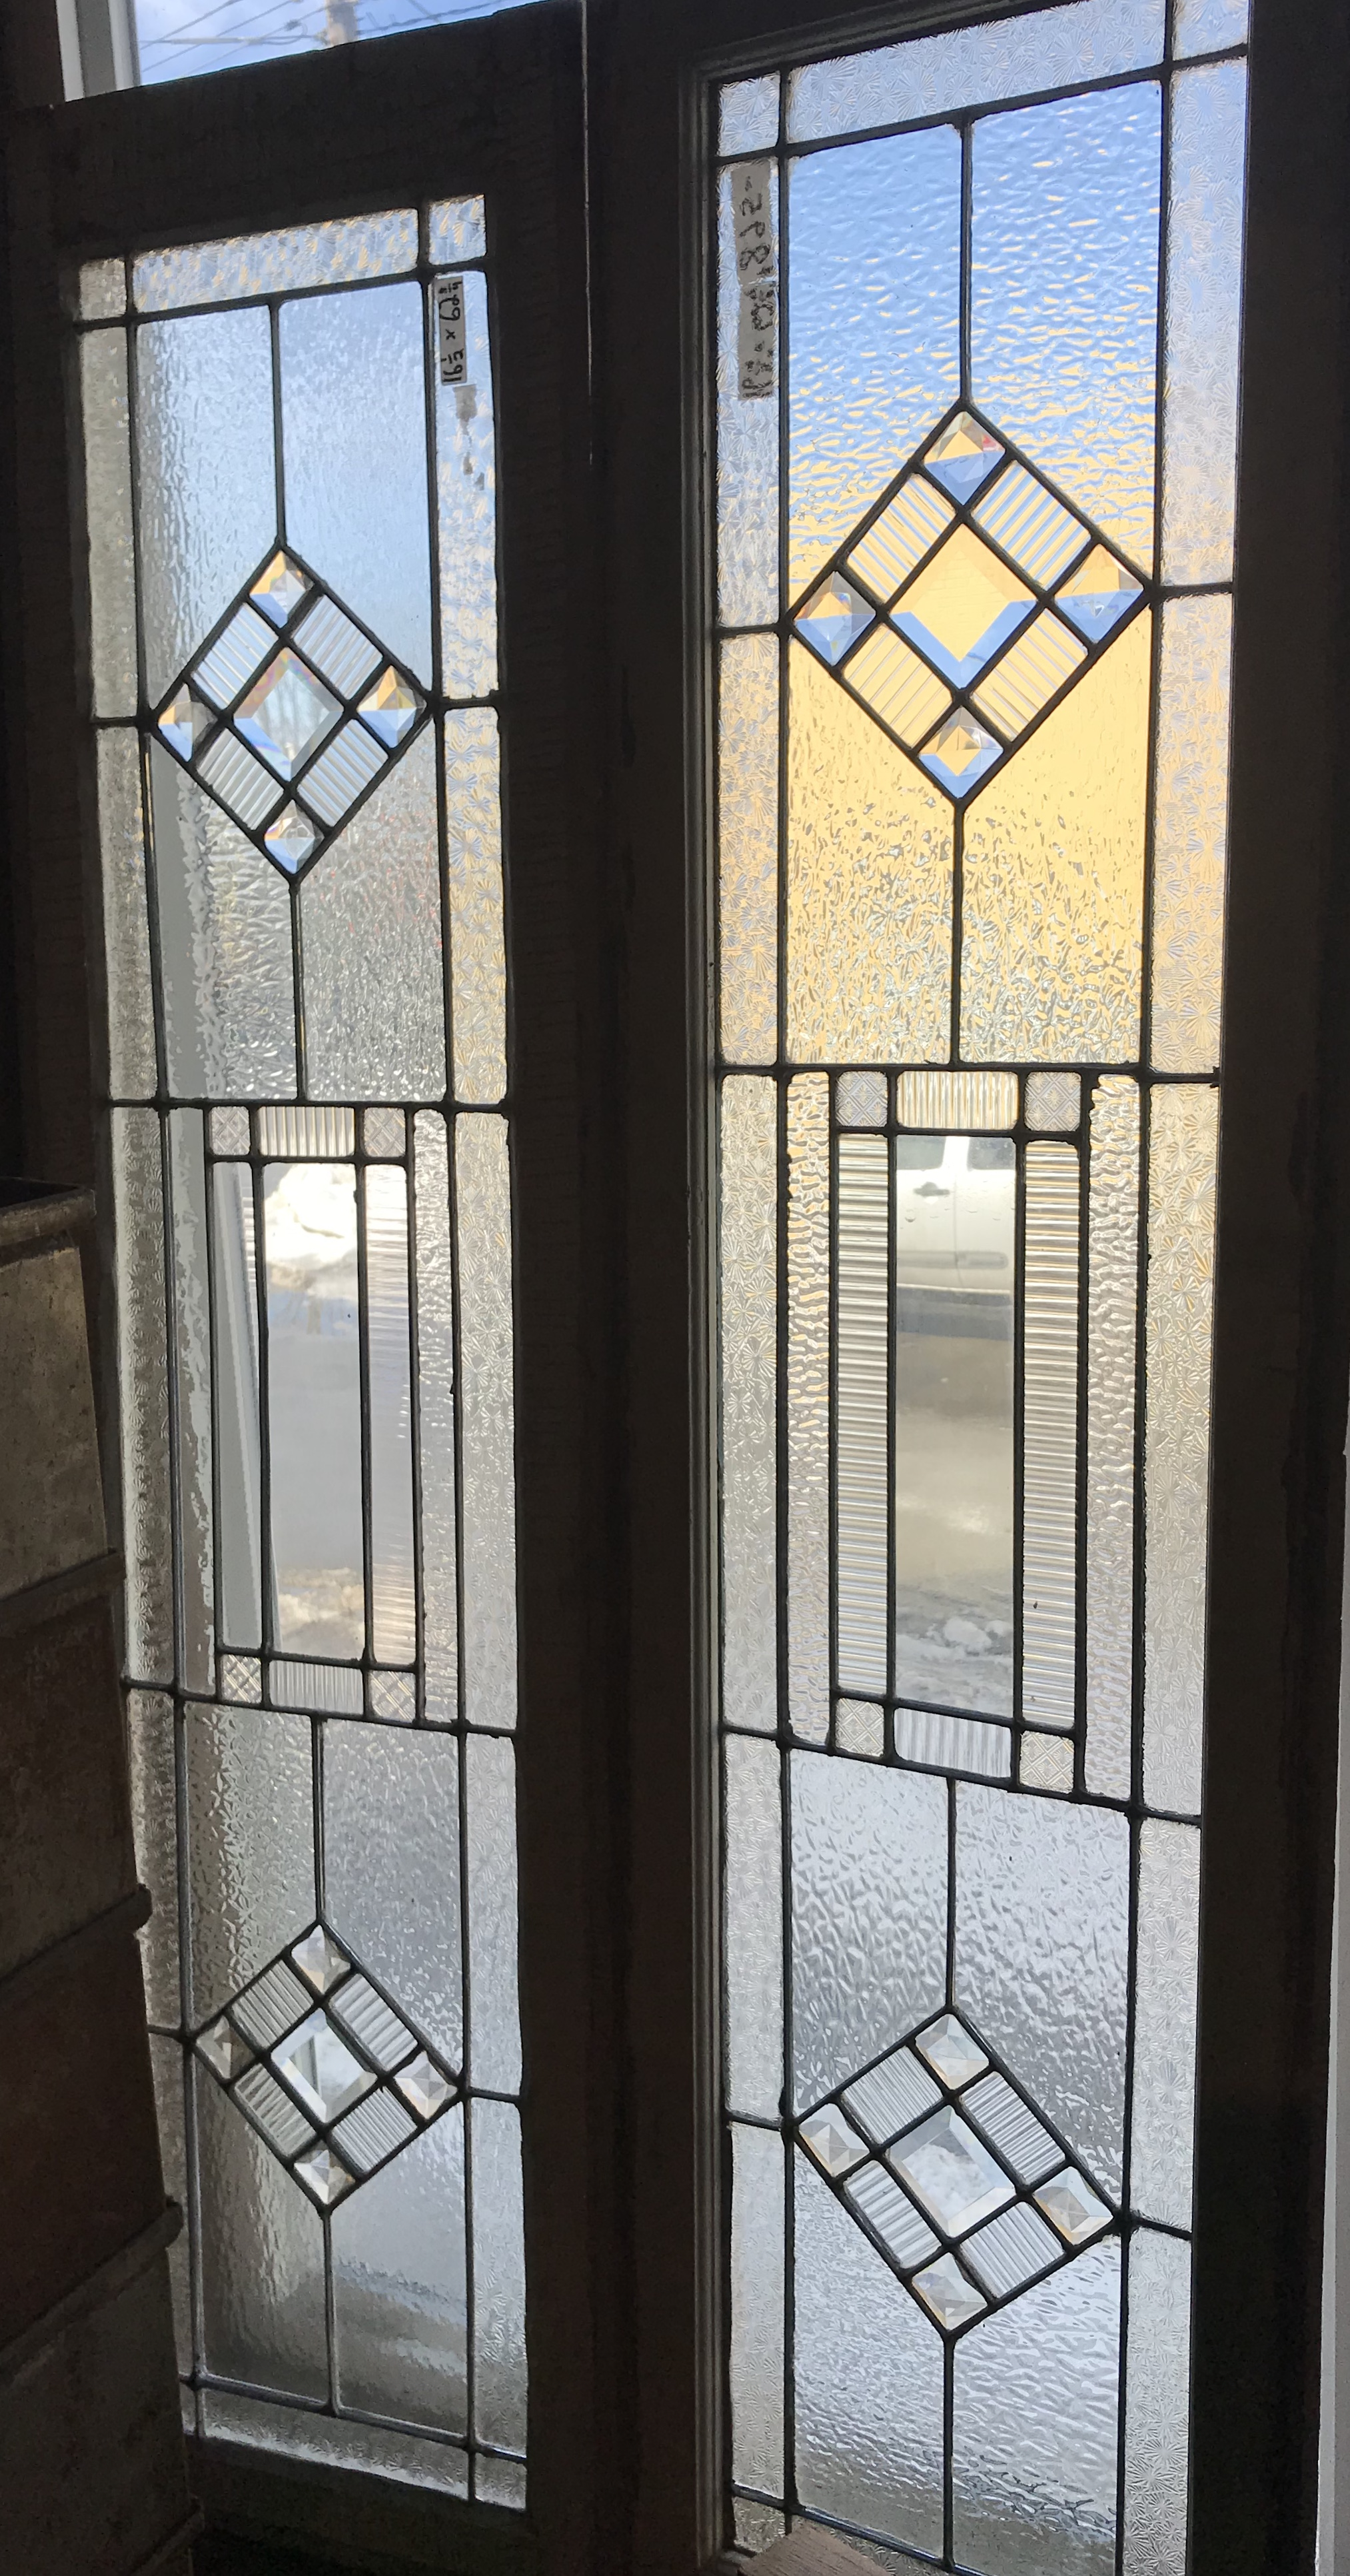 Matched Pair of privacy glass sidelights